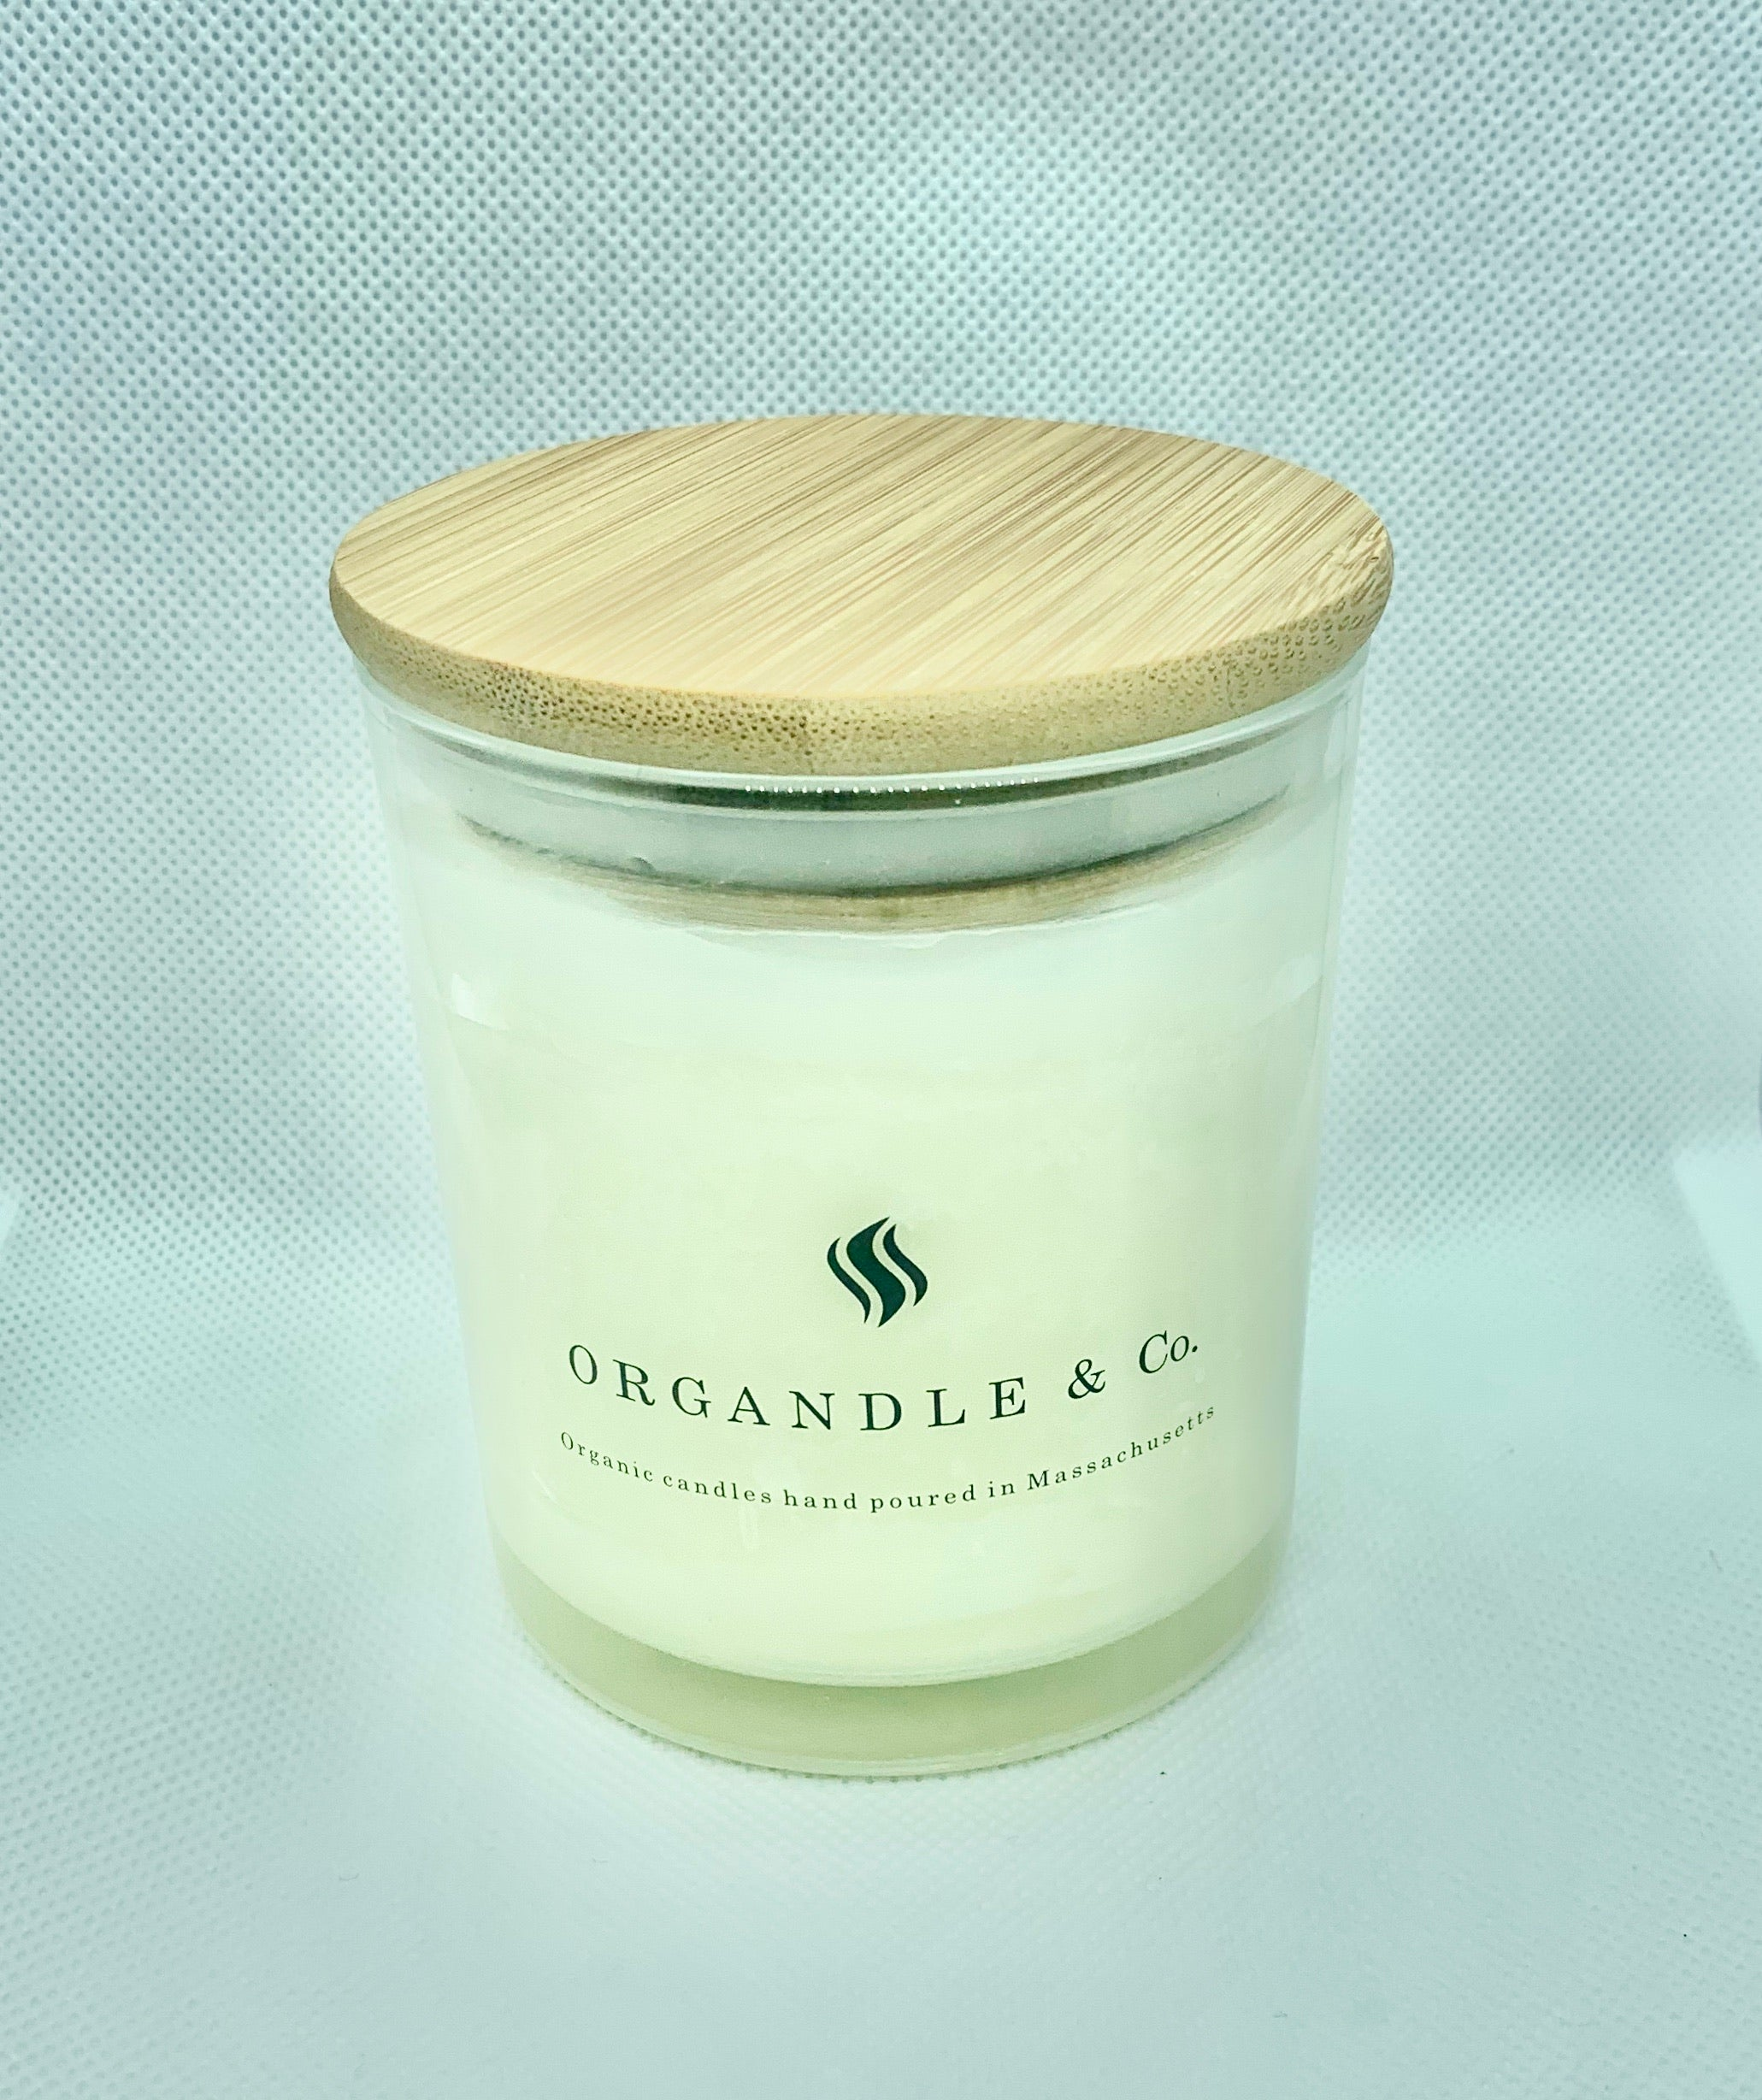 ORANGE essential oil• 10 oz straight sided jar